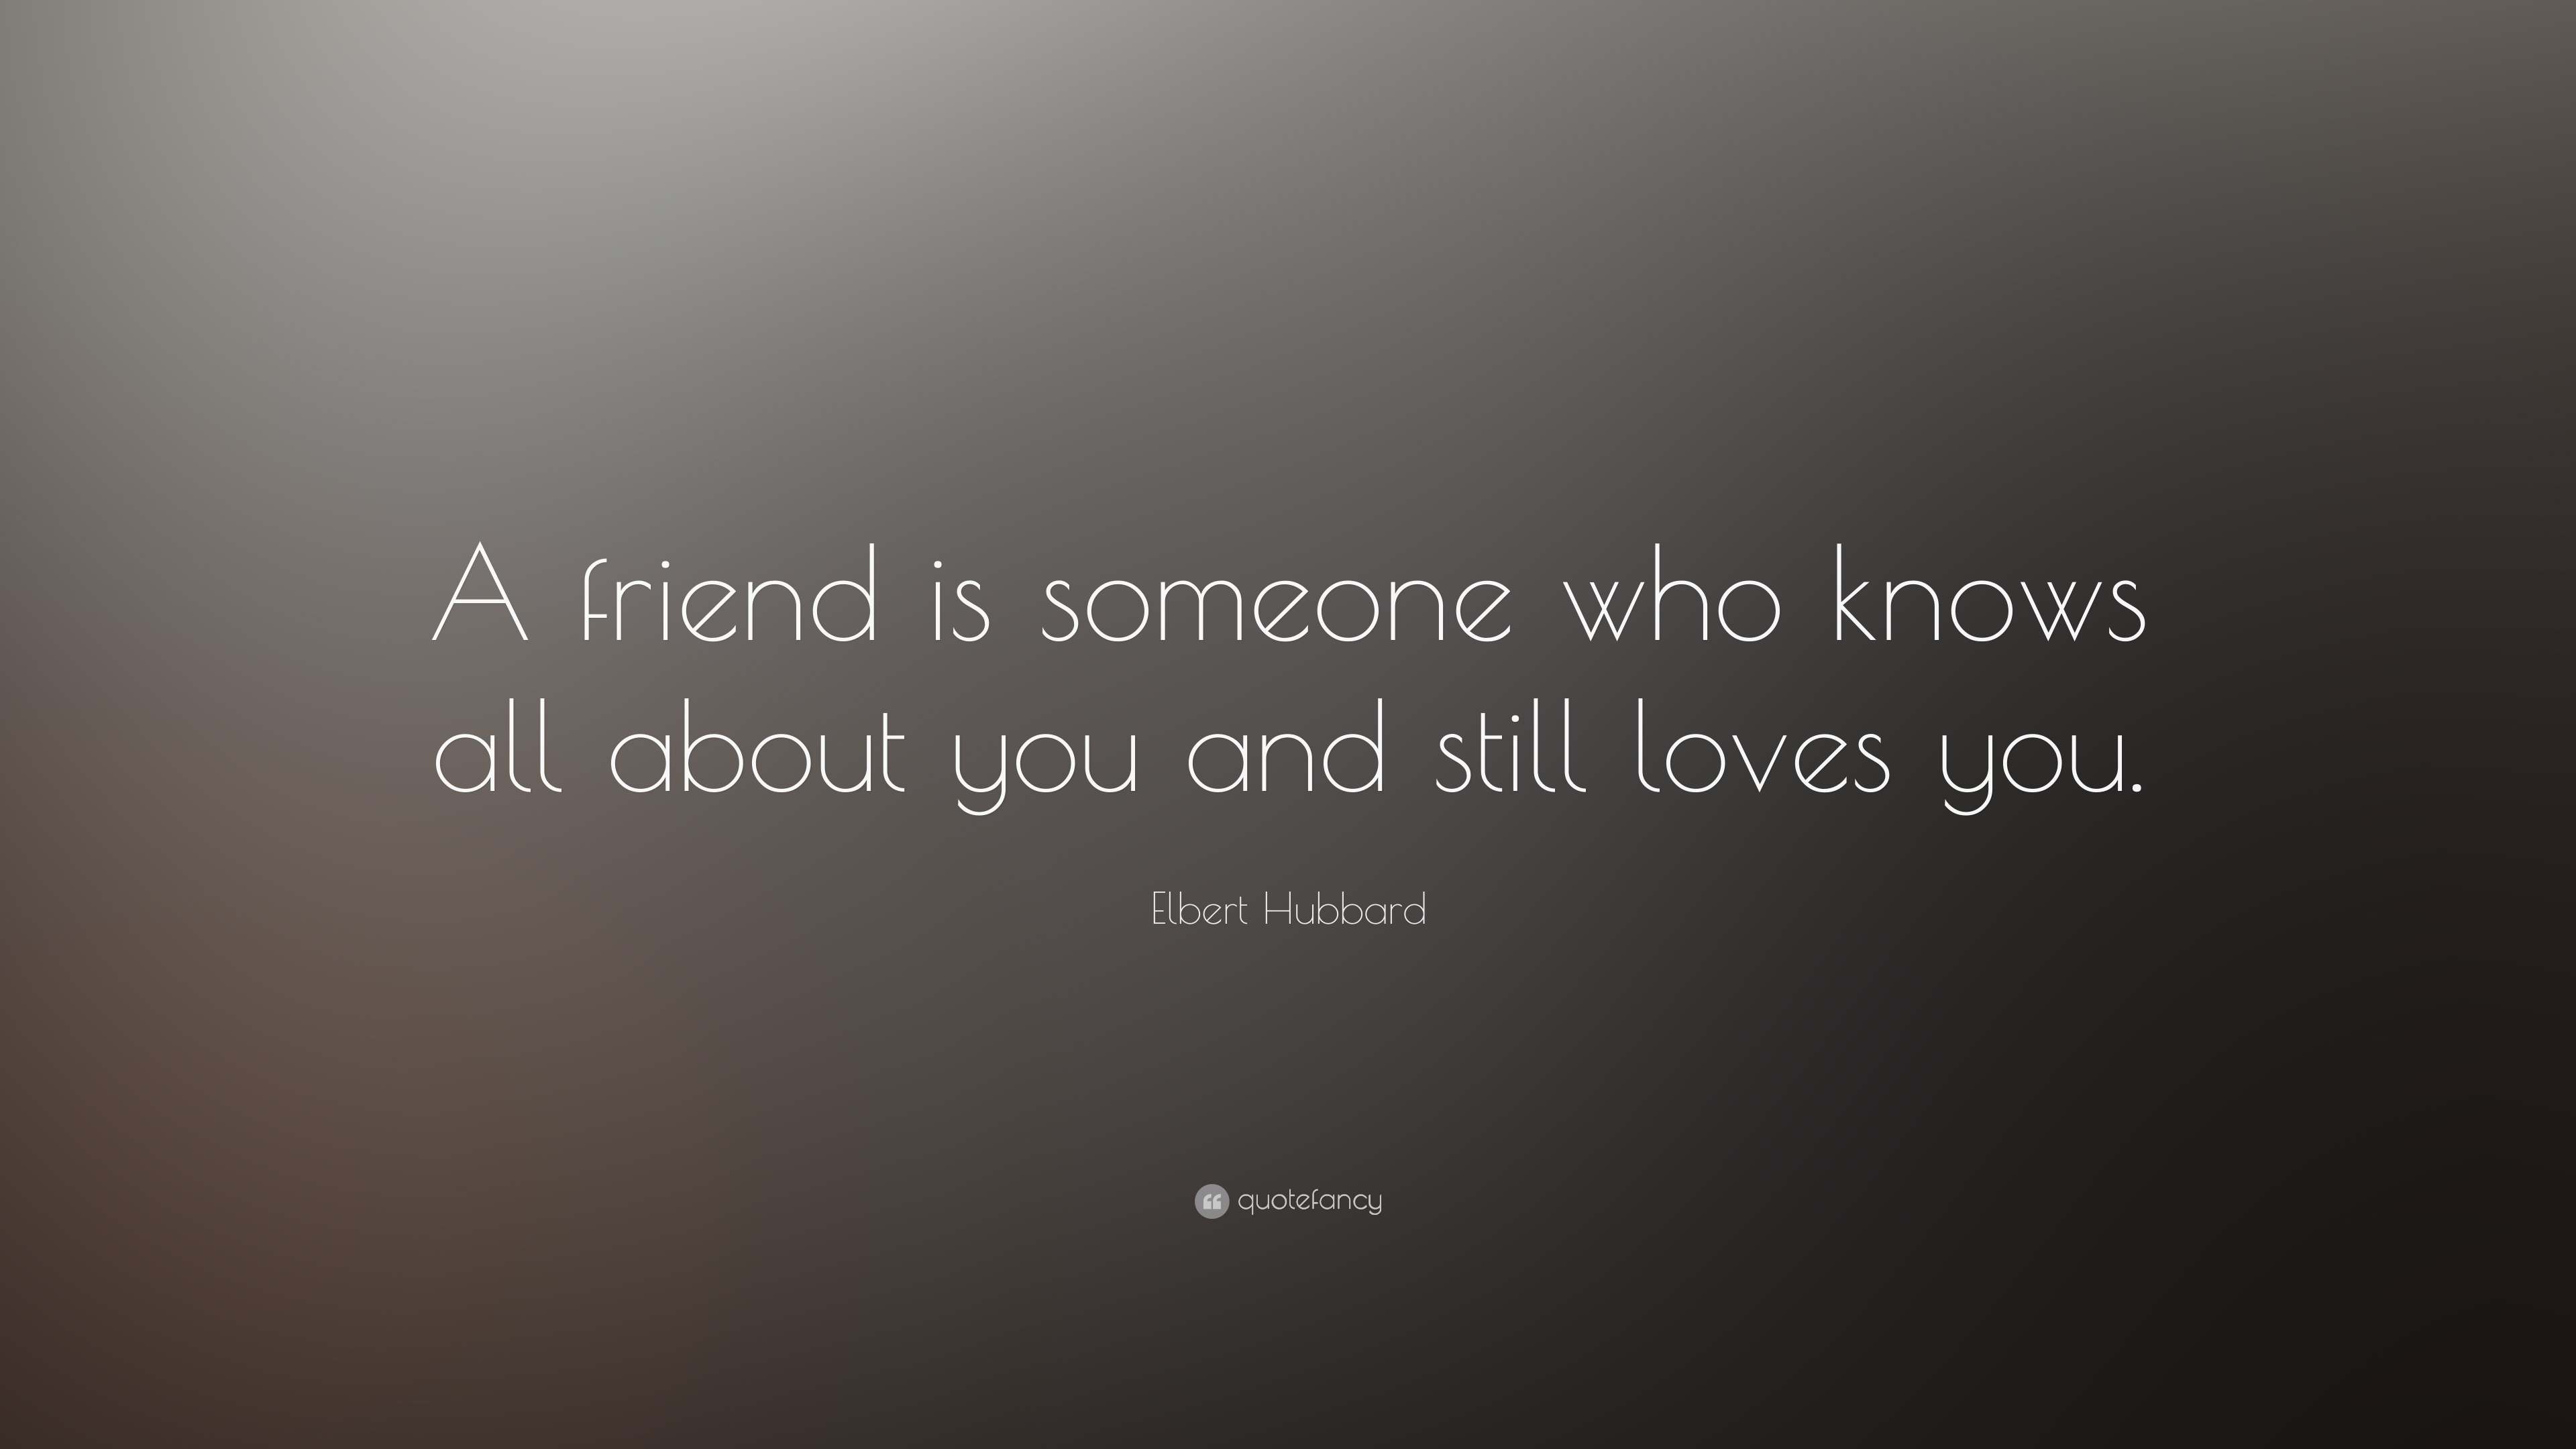 Insperational Quote Wallpaper Friendship Quotes 21 Wallpapers Quotefancy